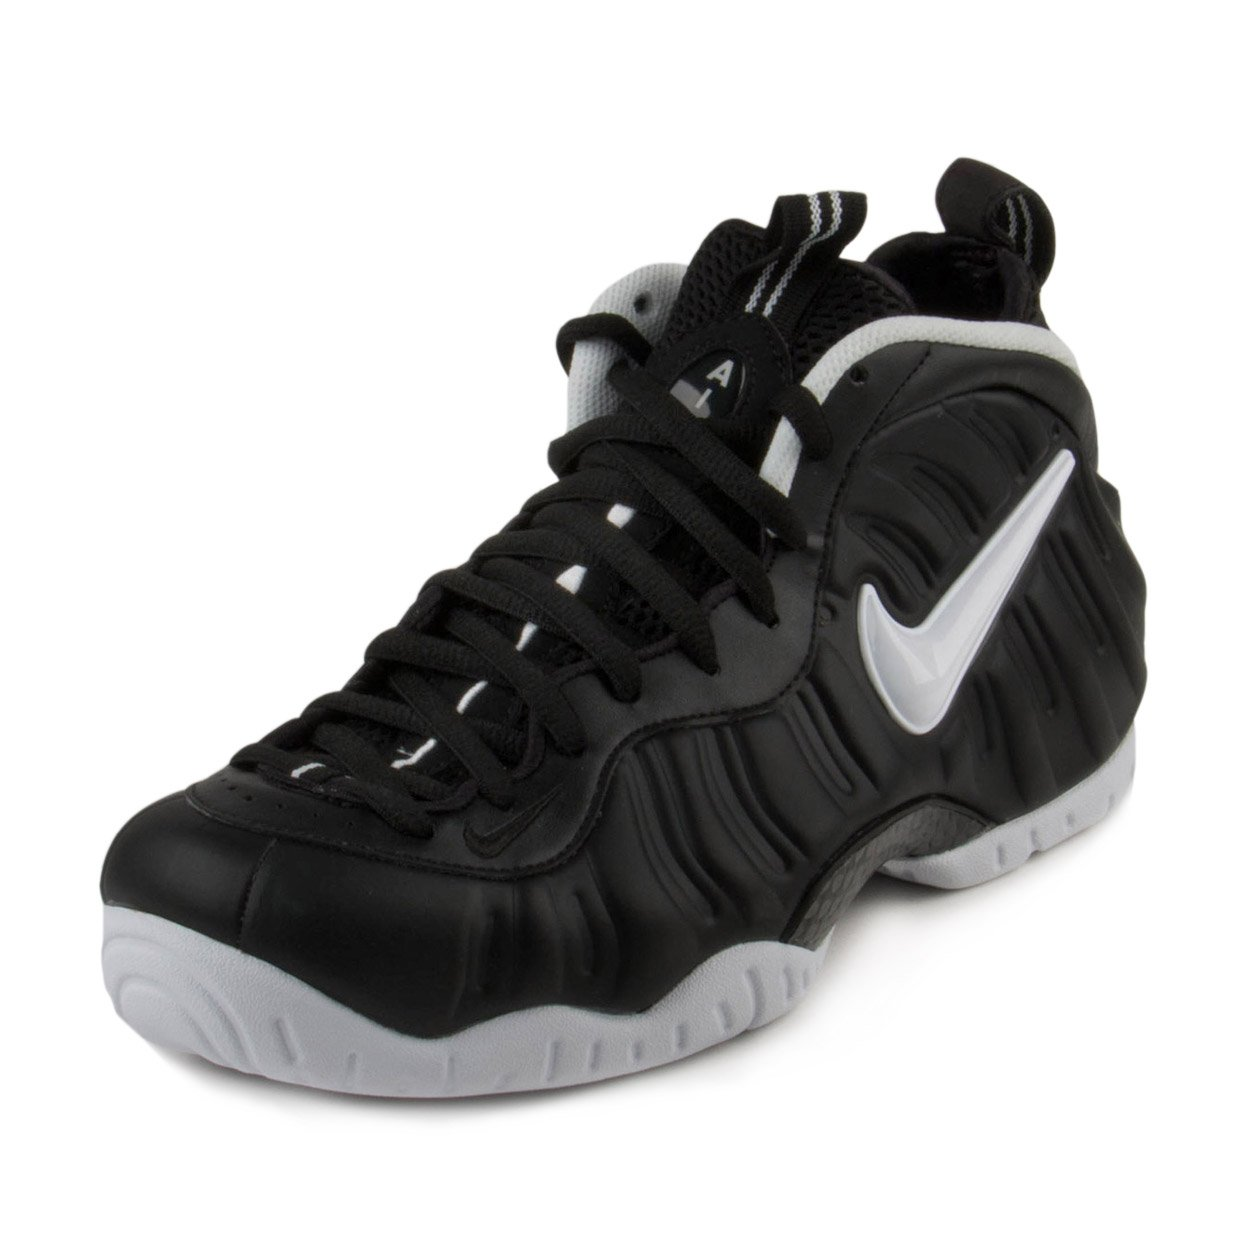 cdaacbda69bd6 Galleon - NIKE AIR Foamposite PRO Mens Basketball-Shoes 624041-006 8.5 -  Black White